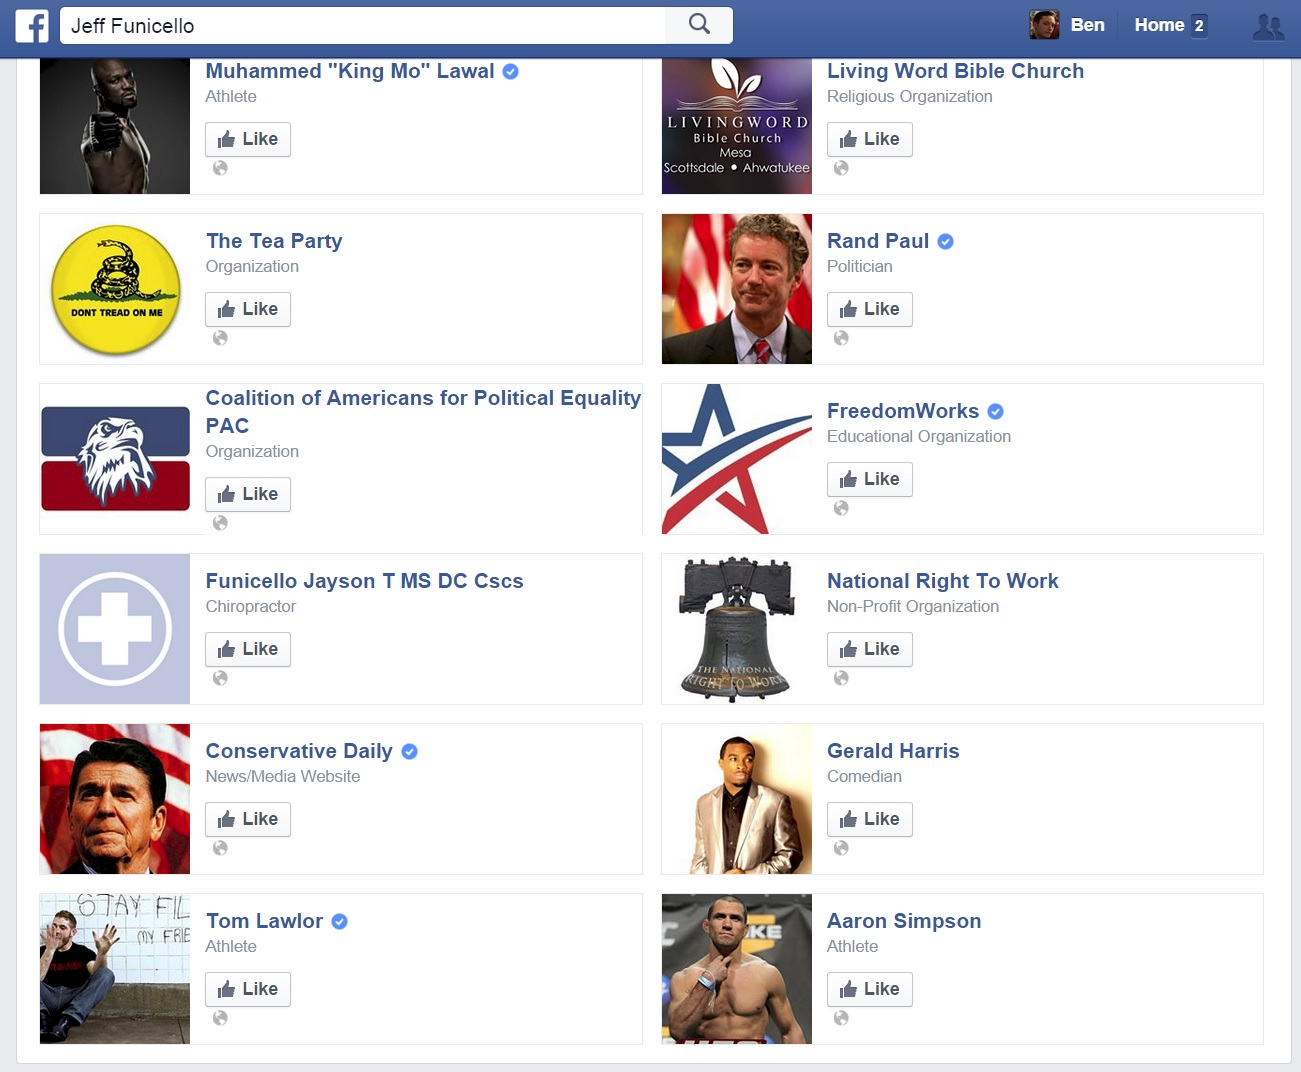 The right-wing pages Jeff Funicello likes on Facebook